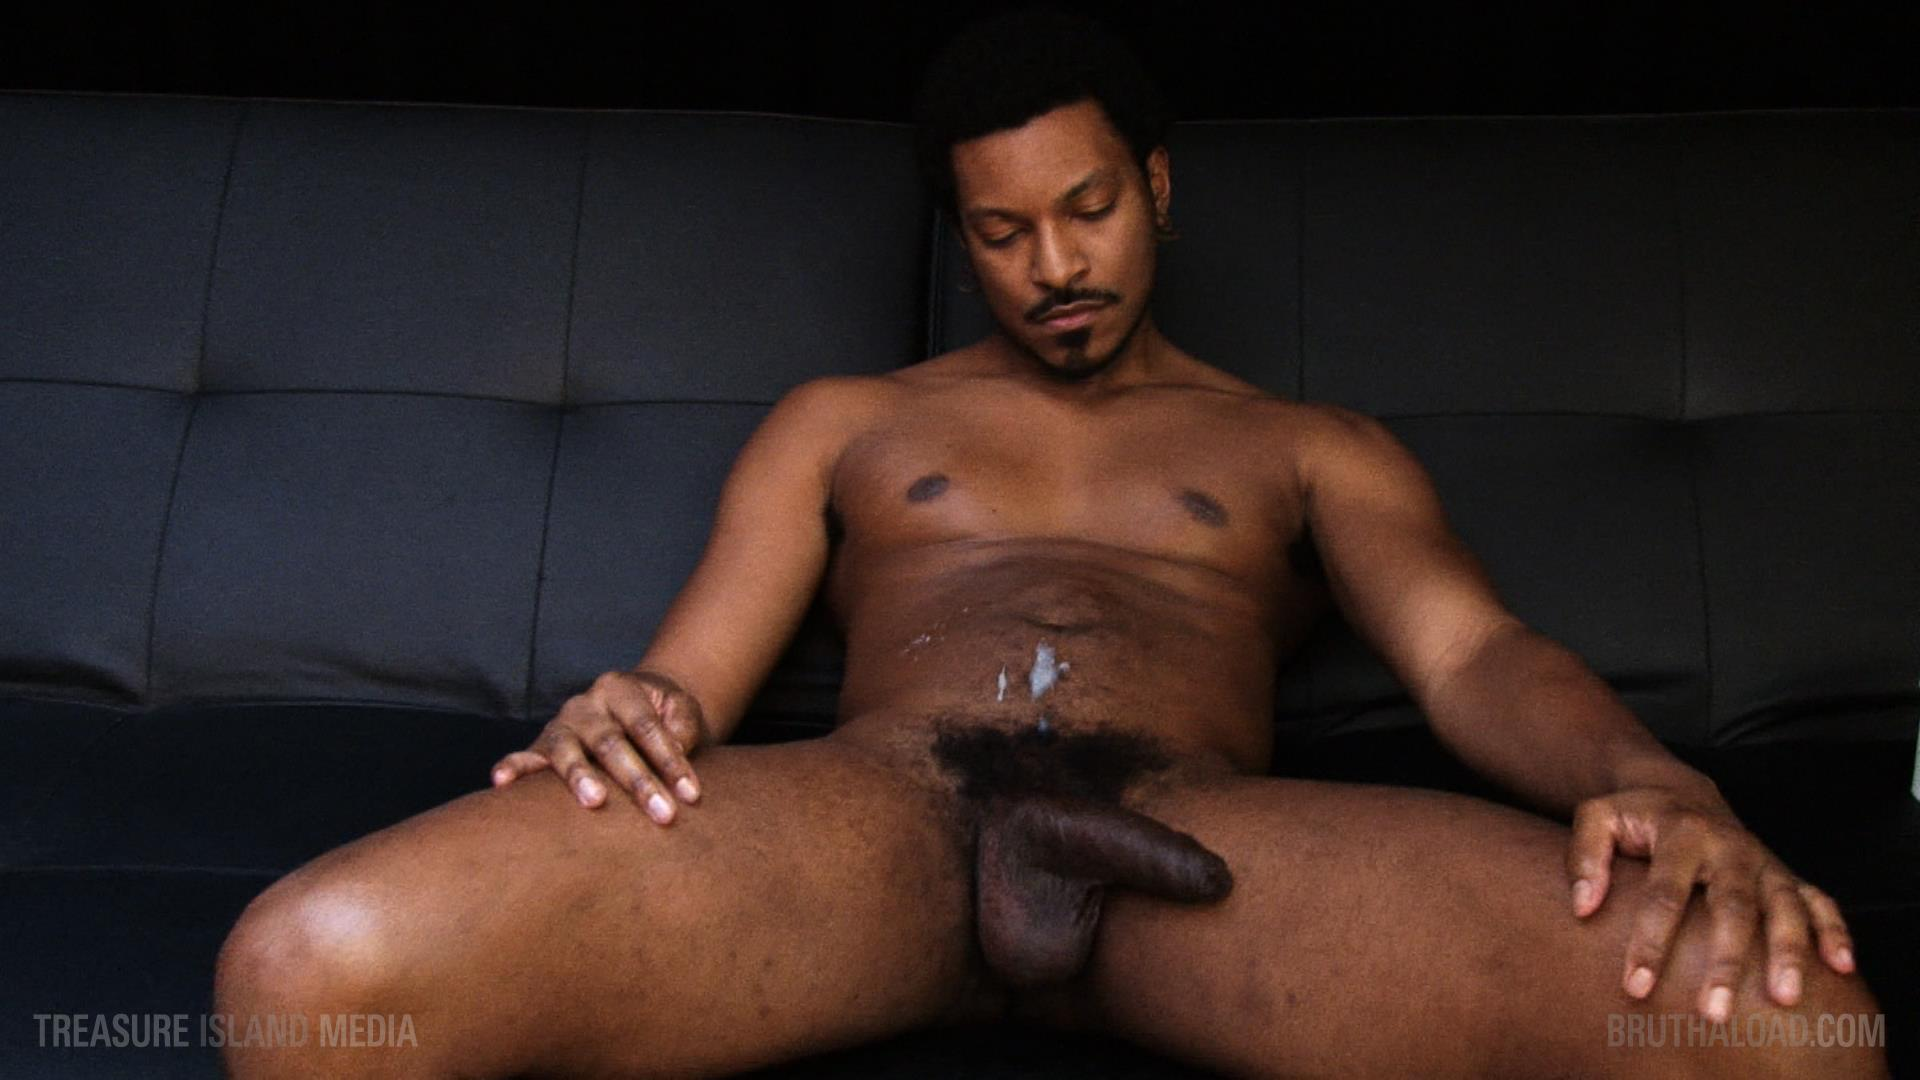 Treasure-Island-Media-Bruthaload-Devin-Masters-Big-Black-Uncut-Cock-27 Treasure Island Media's Bruthaload: Devin Masters Edging His Big Black Uncut Cock